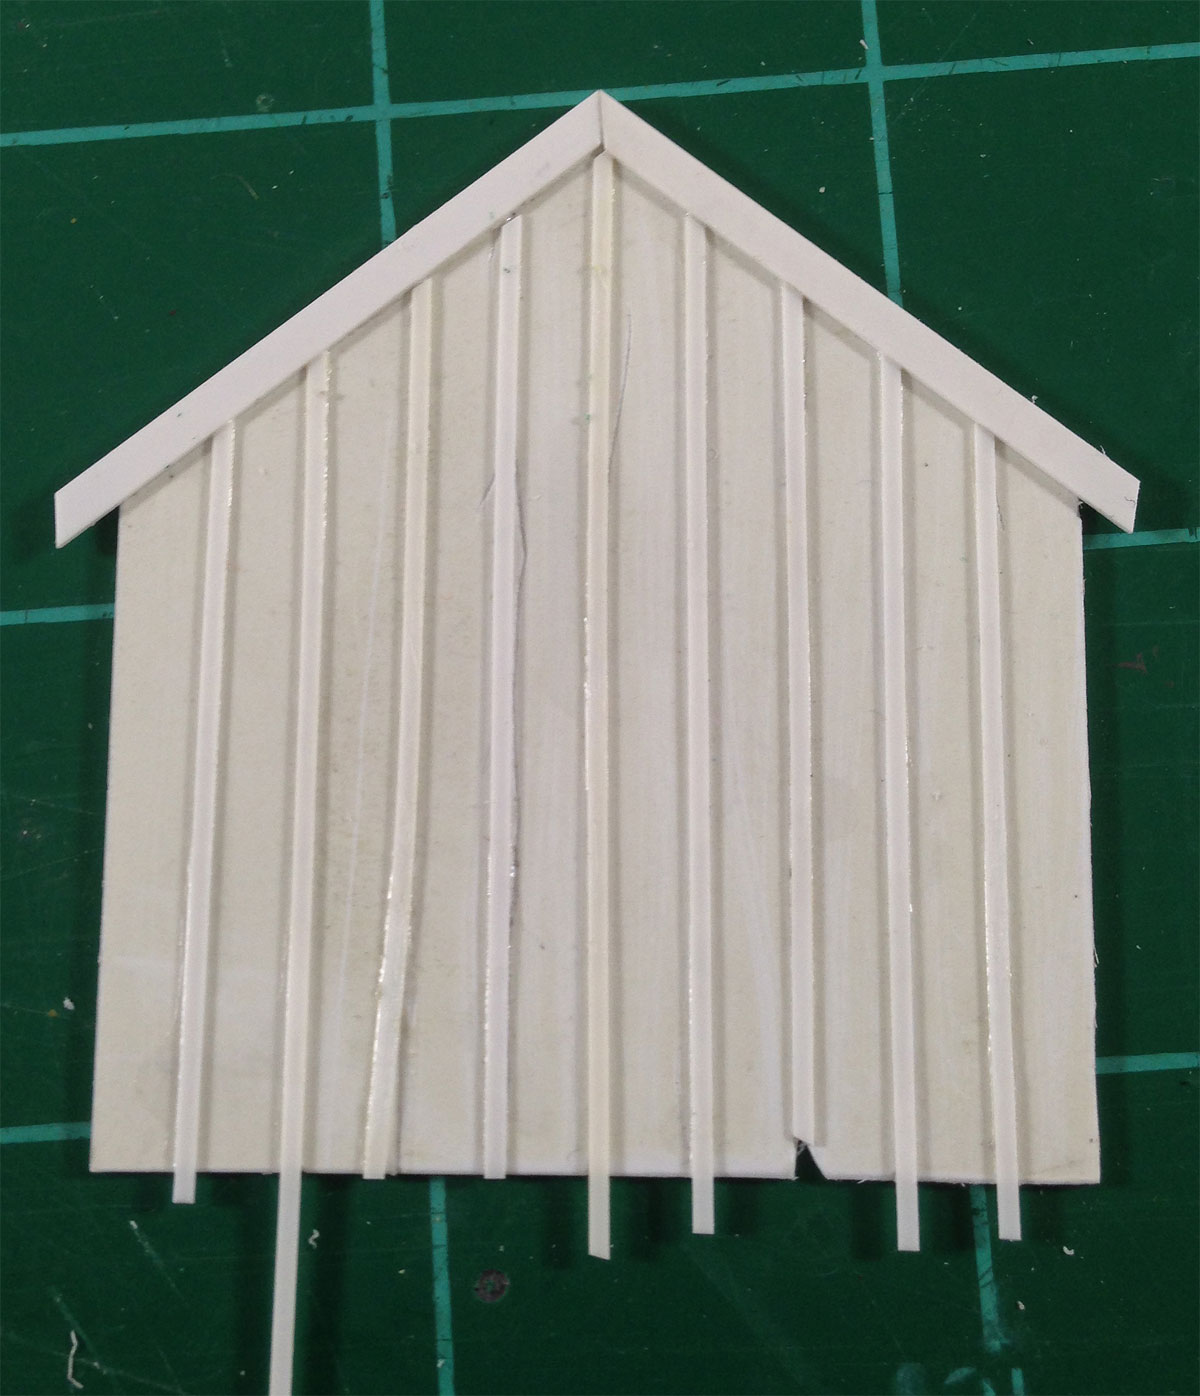 Scratchbuilding a Shed | Notes on Designing, Building, and Operating ...